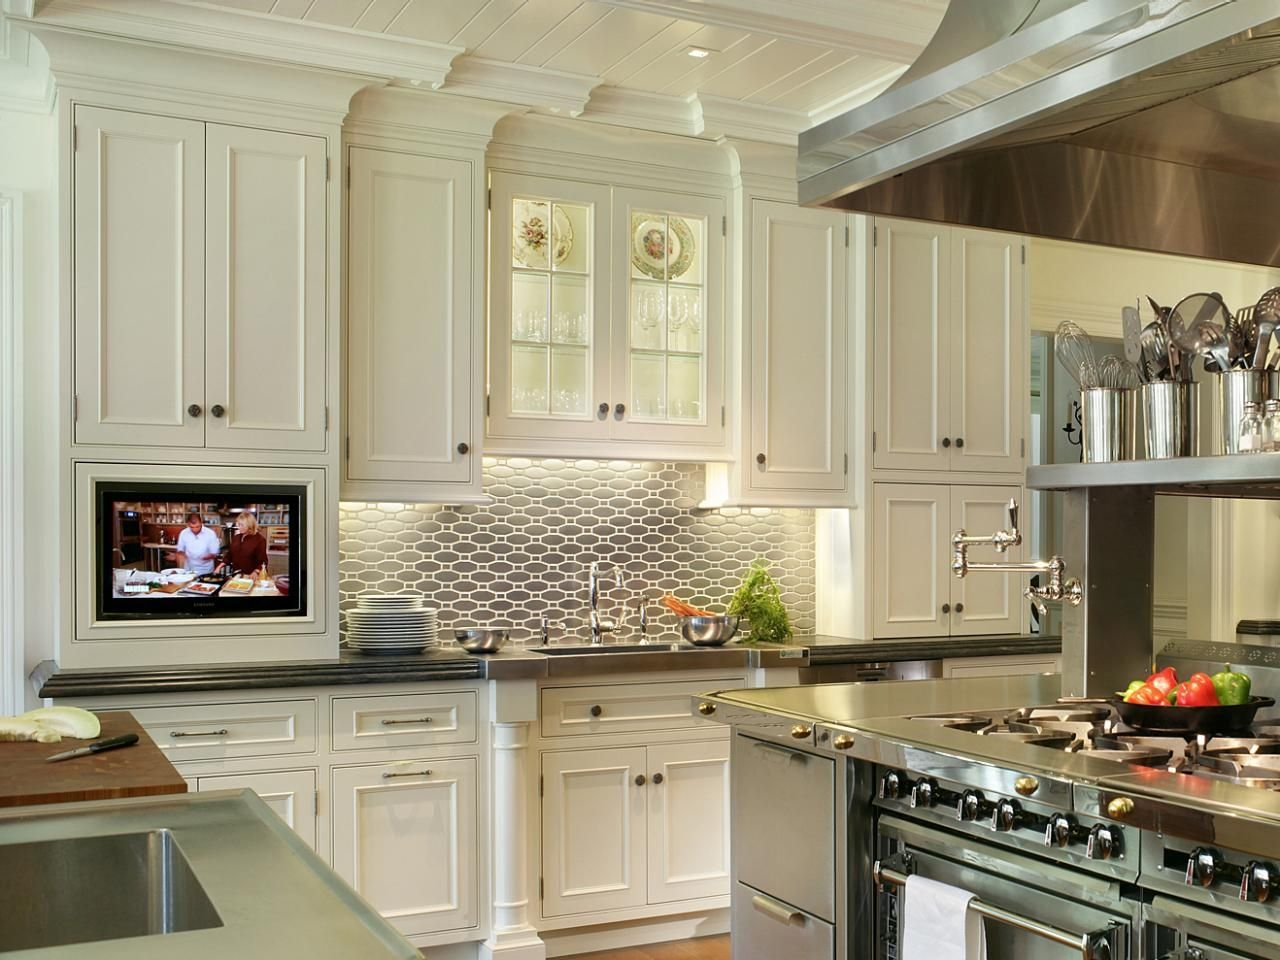 Taller kitchen wall cabinets garecscleaningsystems